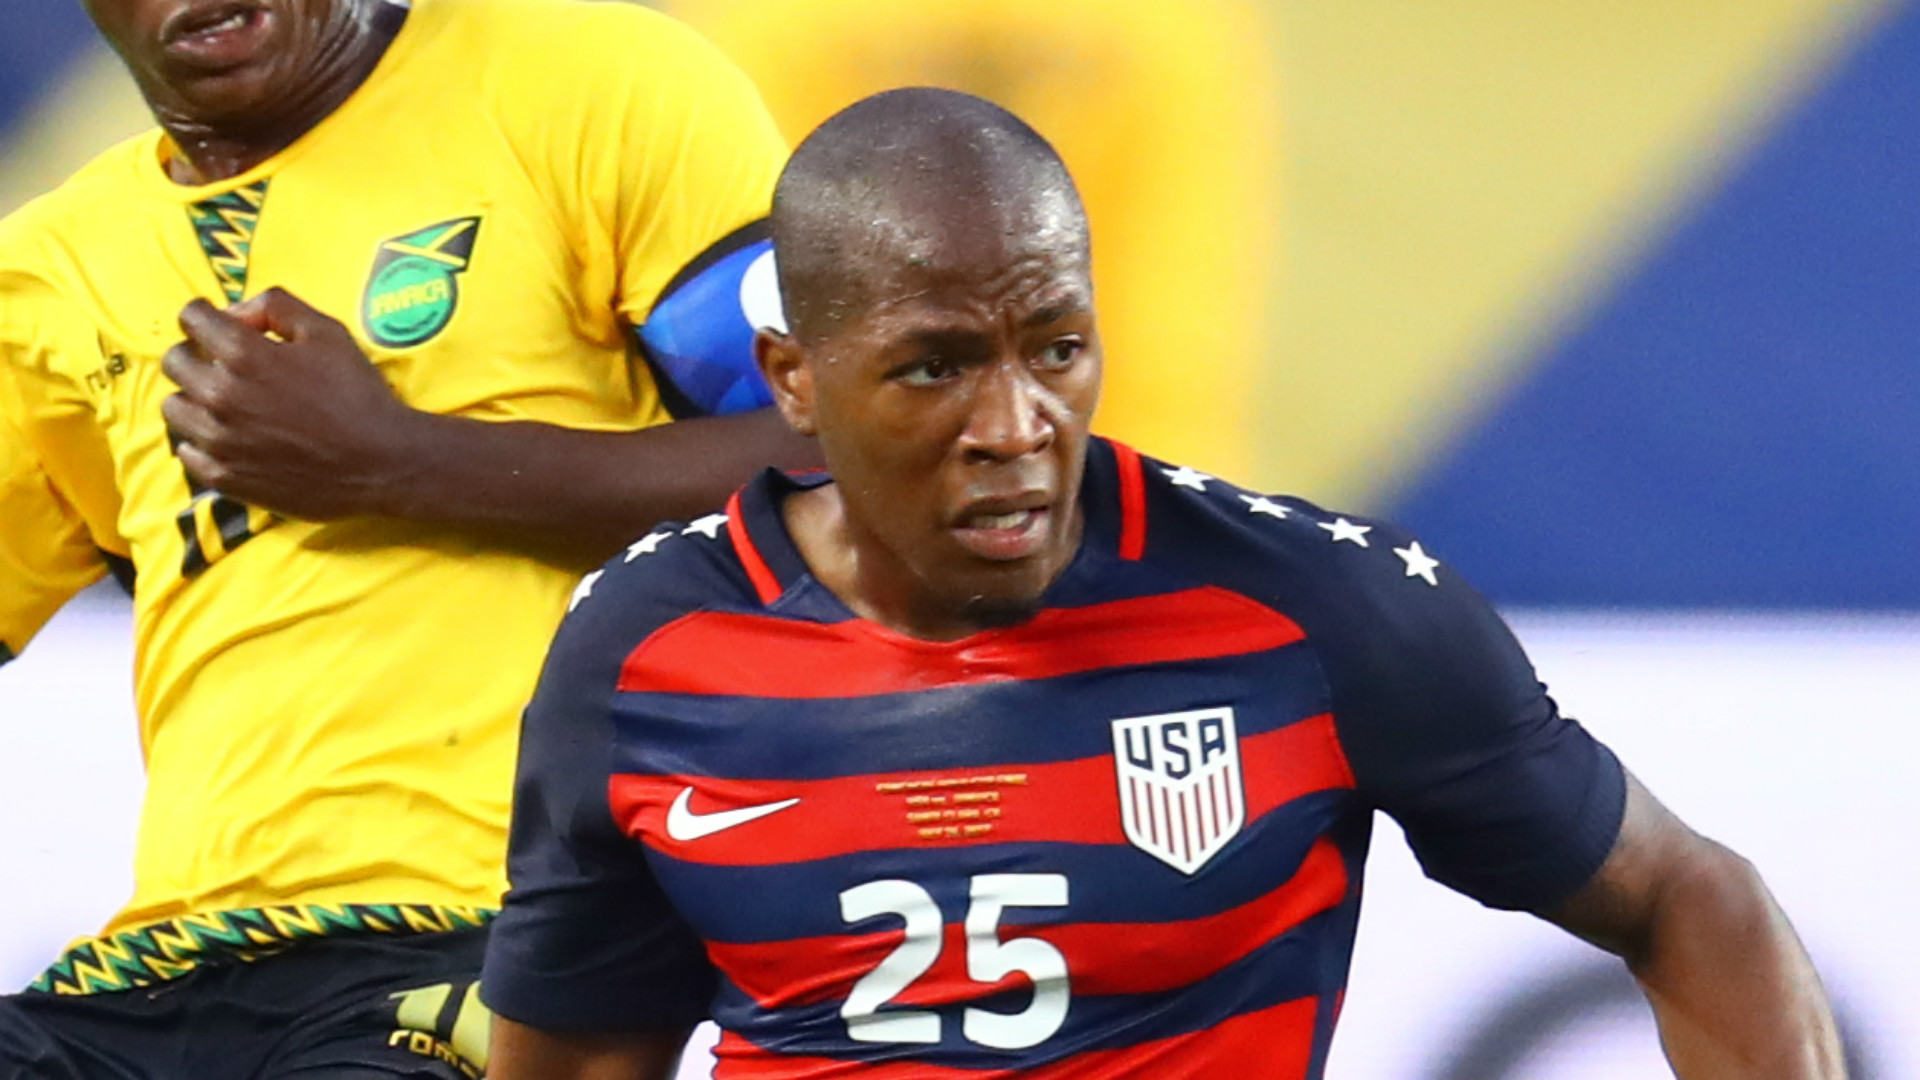 'Is the World Cup worth missing time with my family?' - Nagbe rules out USMNT return